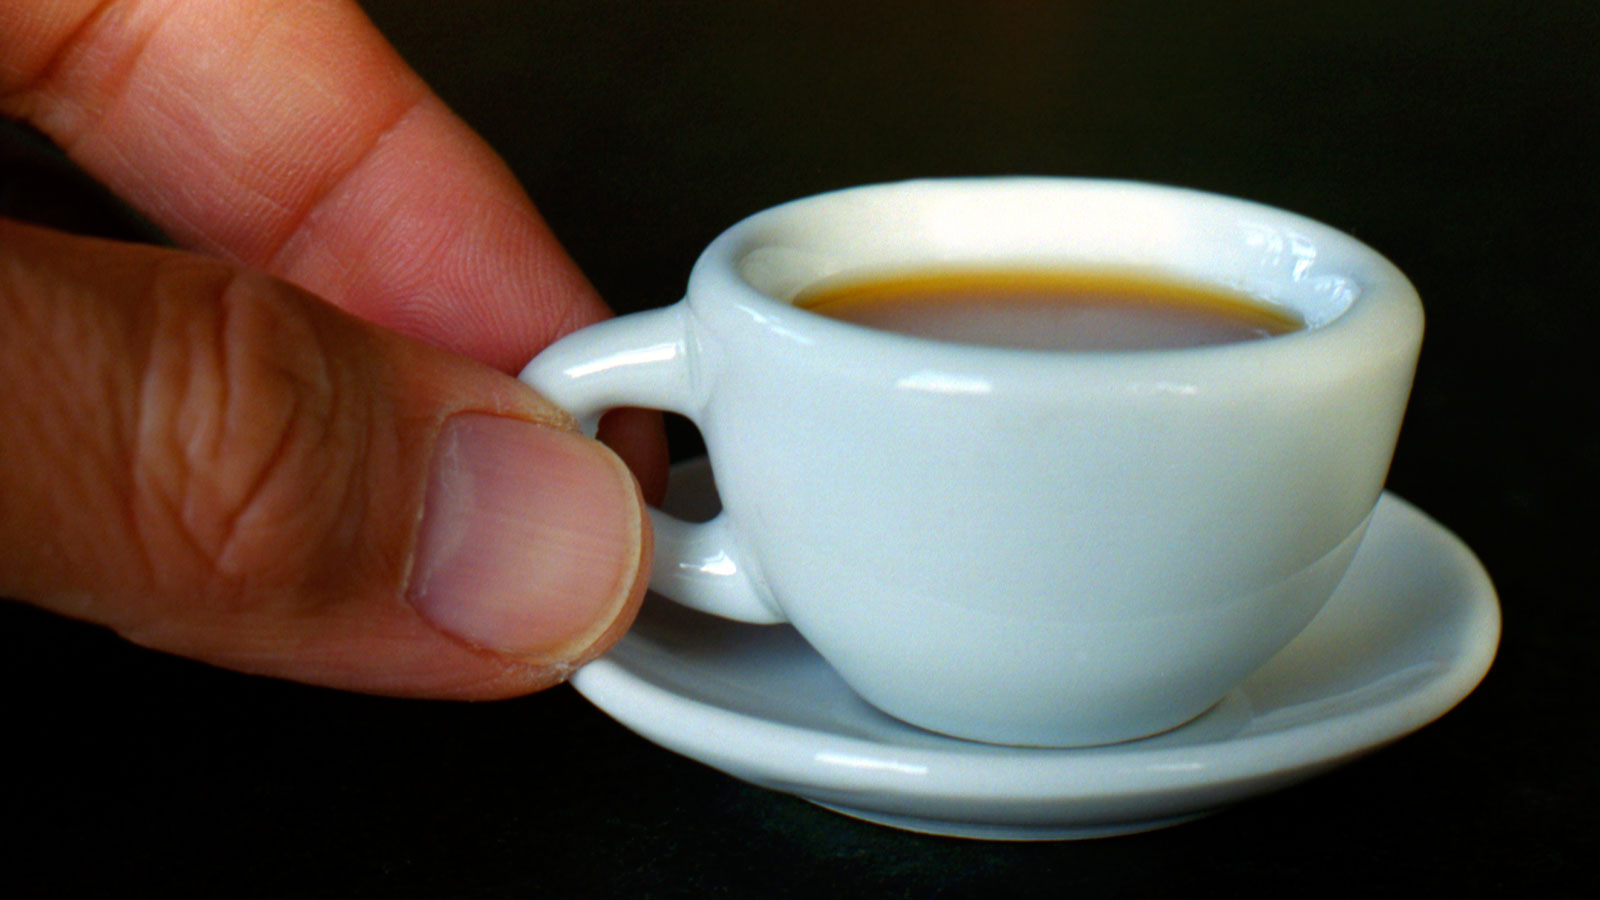 A miniature cup of coffee.